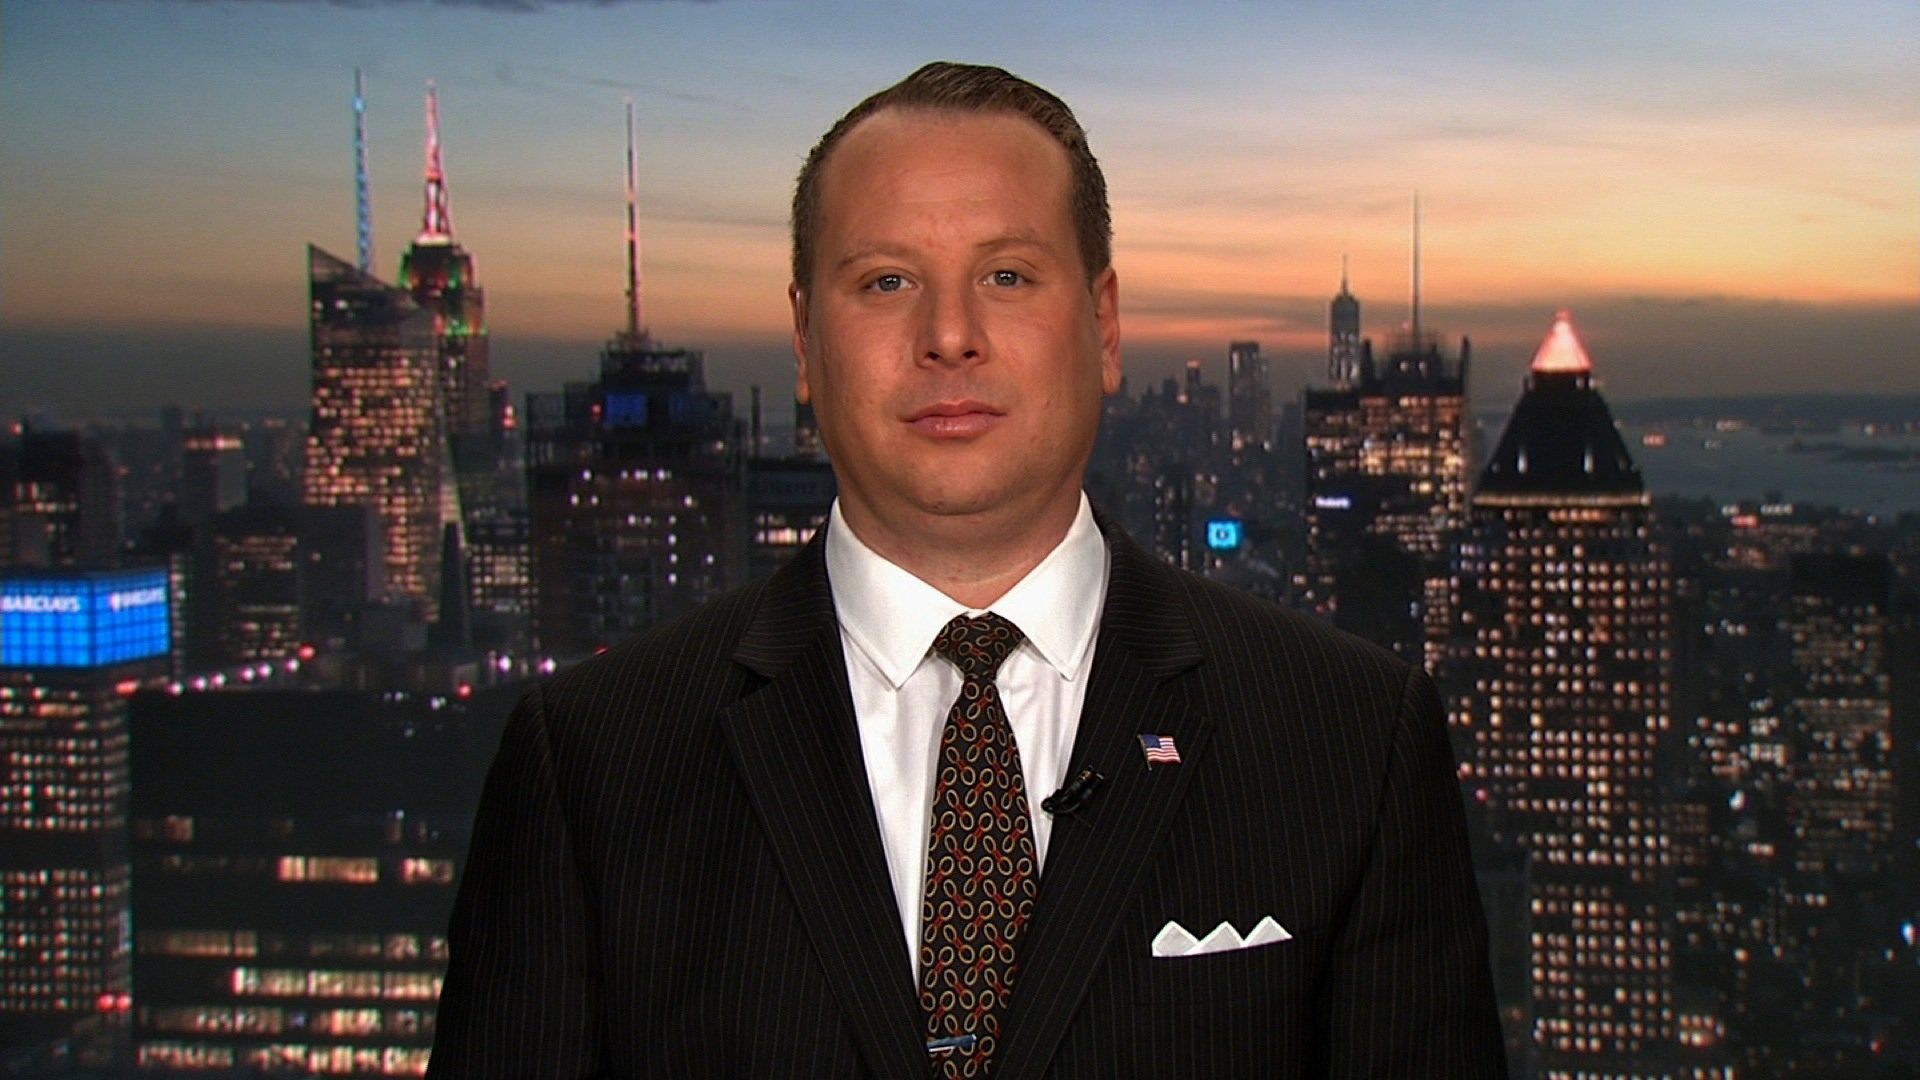 Former Trump campaign aide Sam Nunberg said on March 5, 2018 that he is refusing to comply with a grand jury subpoena in the Russia investigation led by special counsel Robert Mueller. (Credit: CNN)